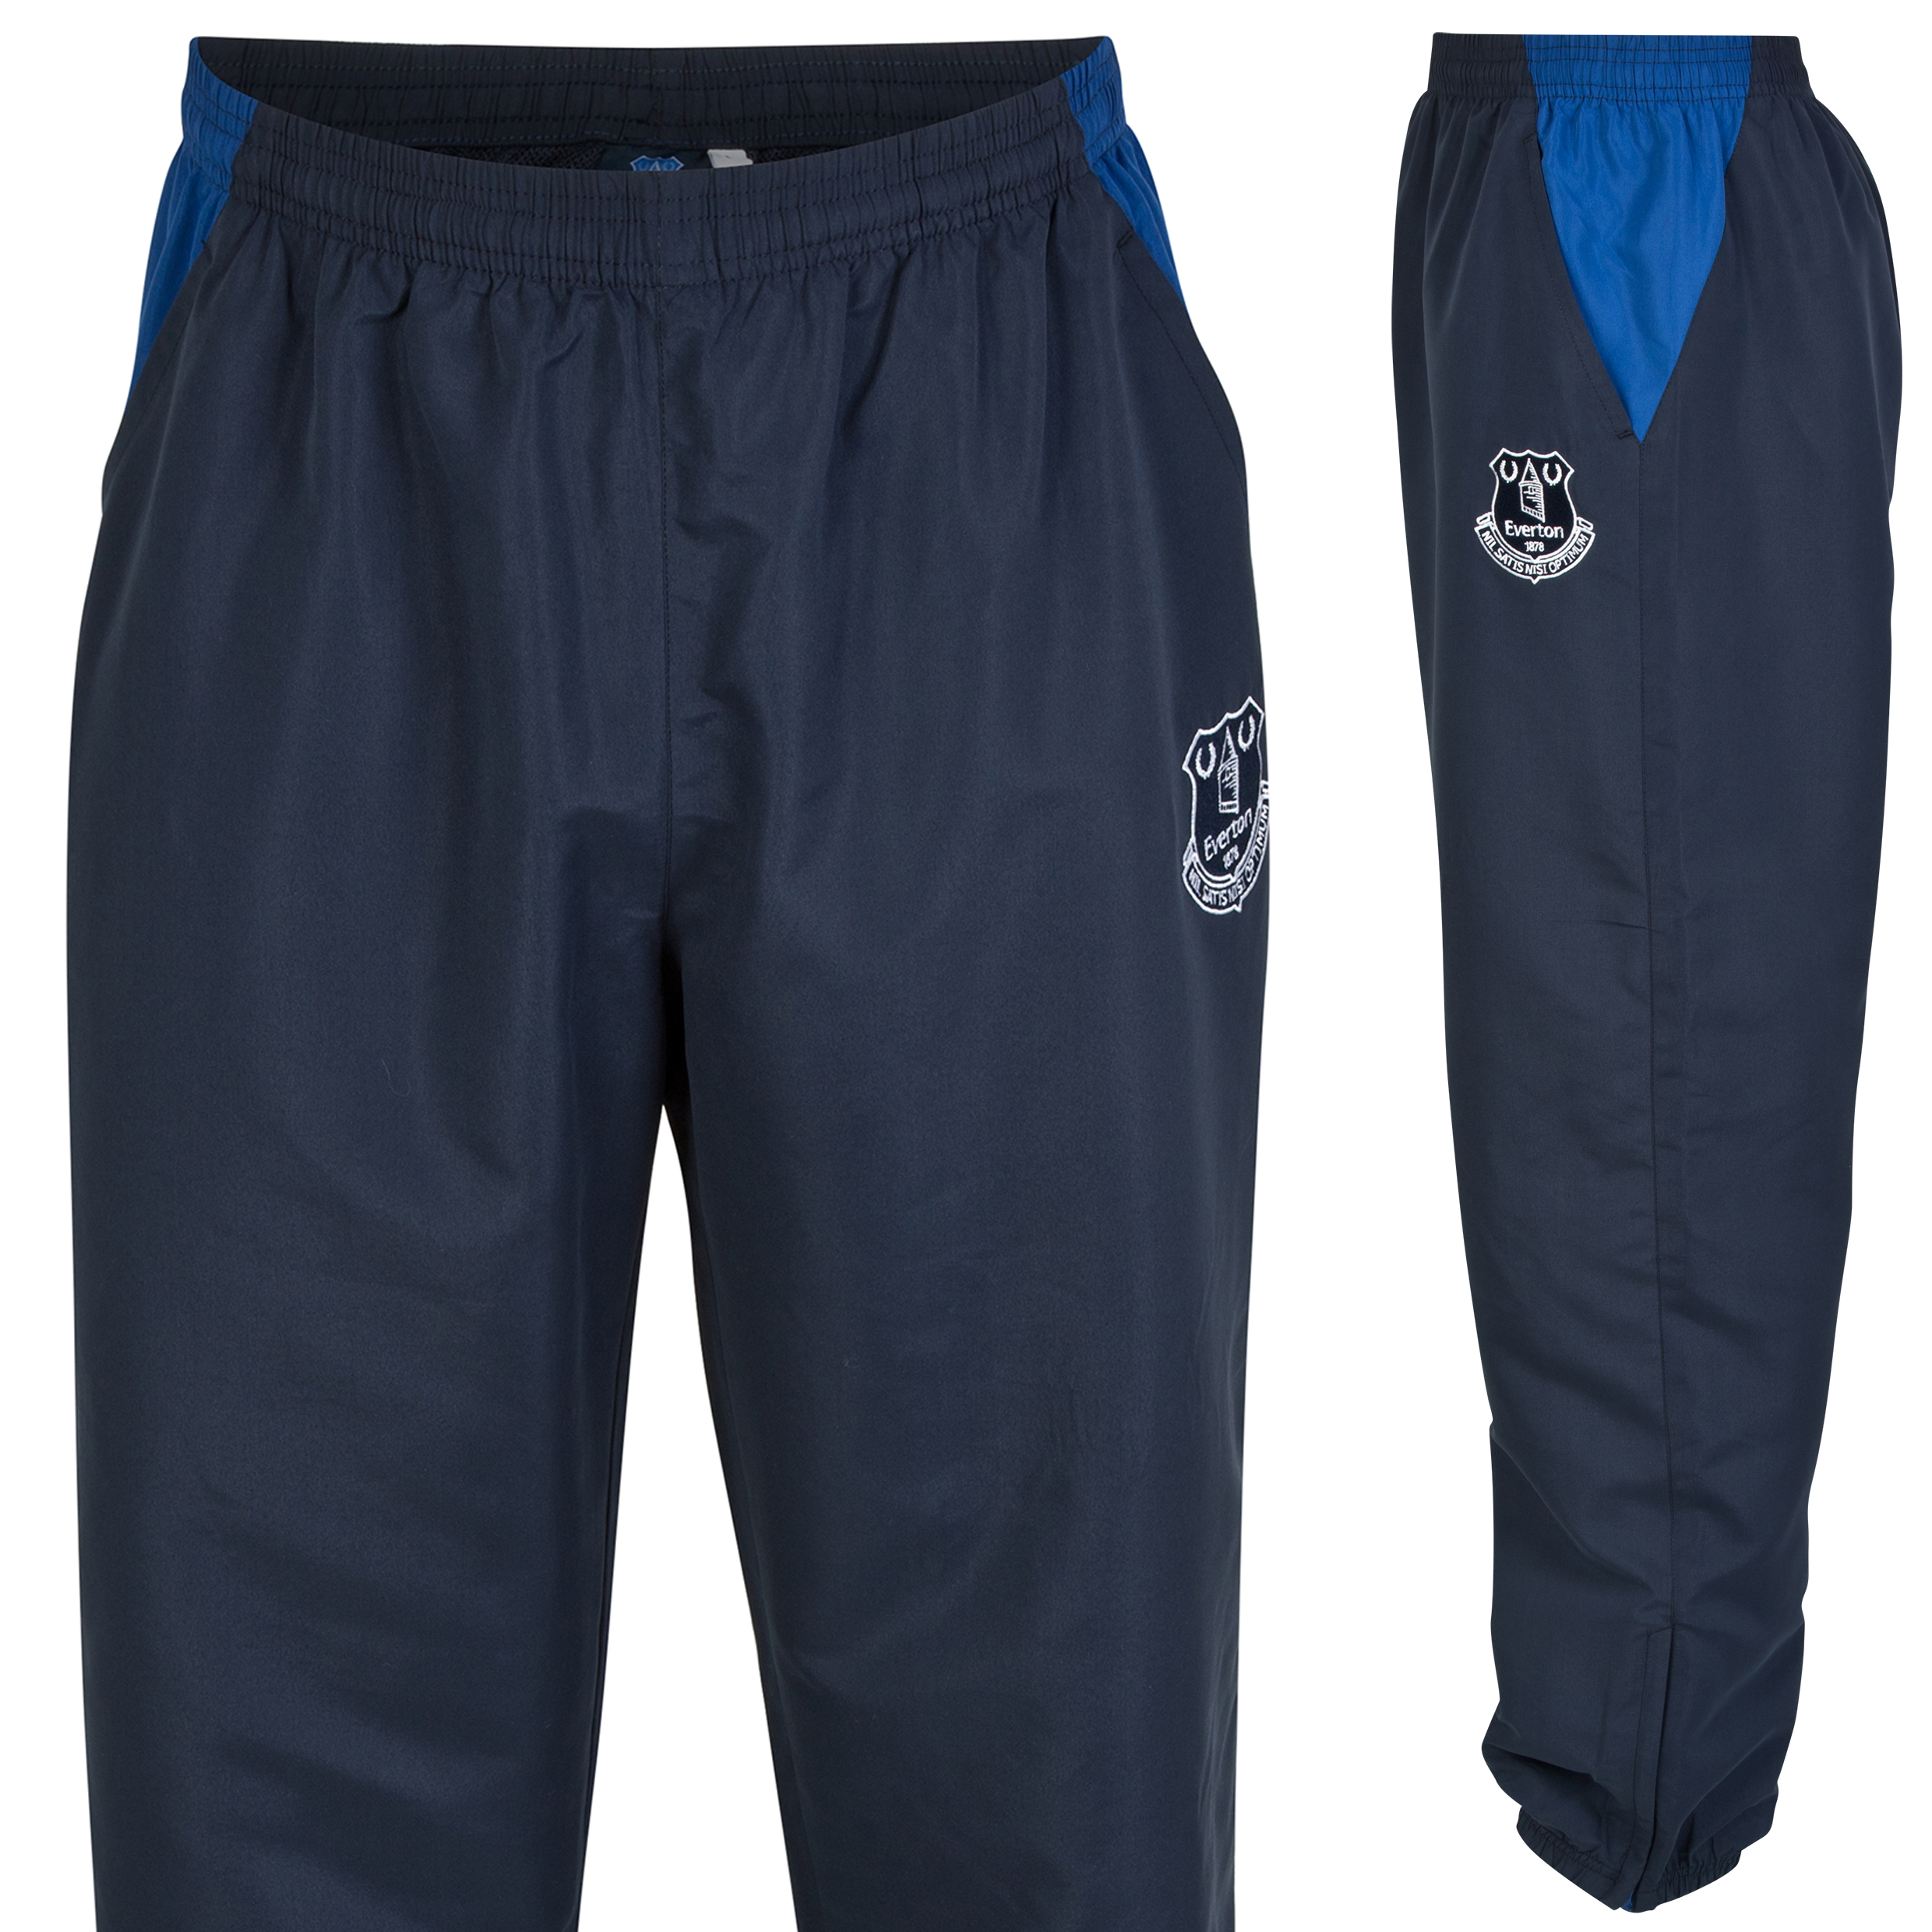 Everton Essential Woven Track Pants - Navy - Infant Boys